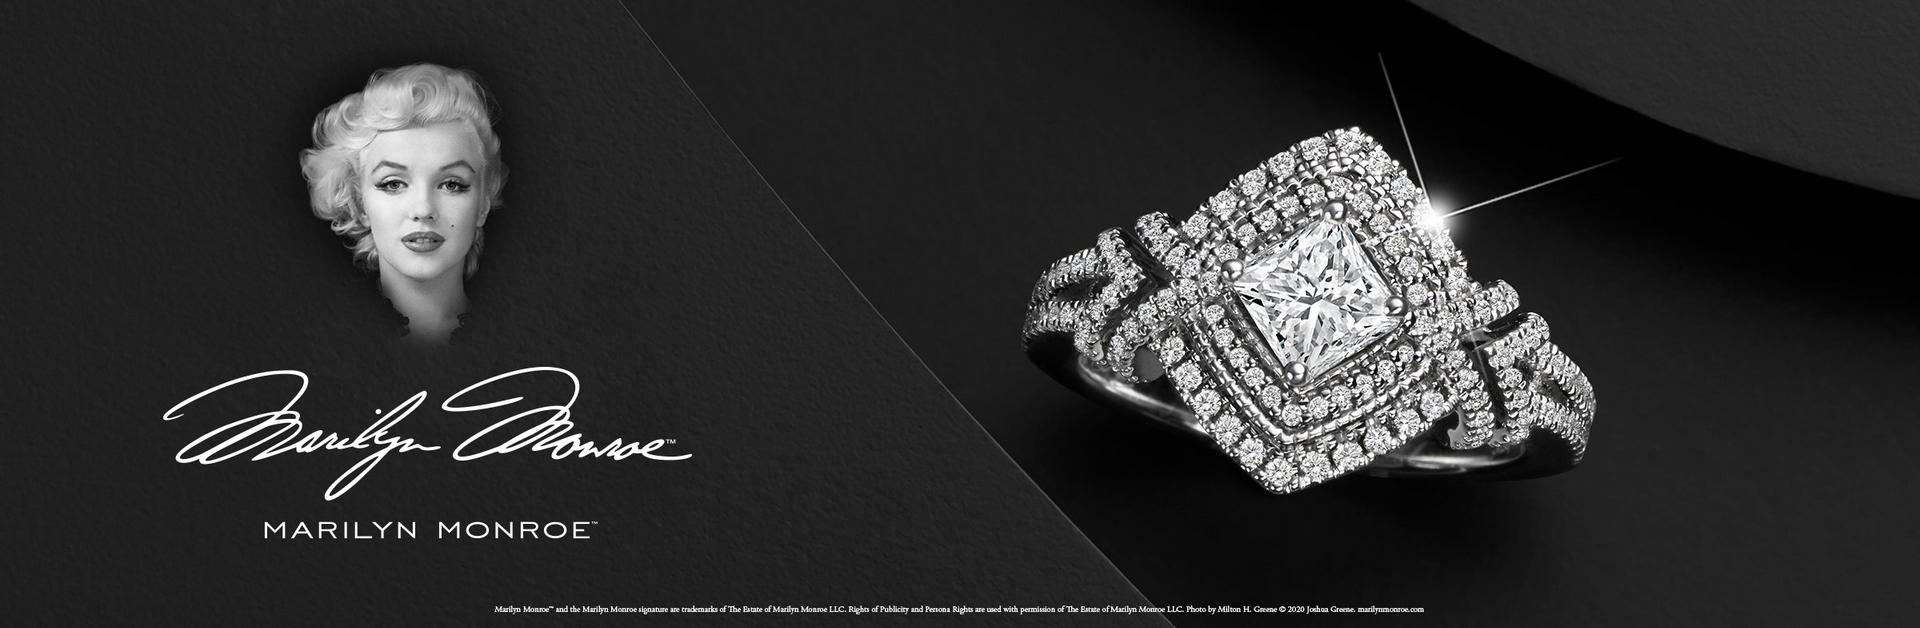 Marilyn Monroe Diamond Jewellery Collection - available online and in-store at Ernest Jones